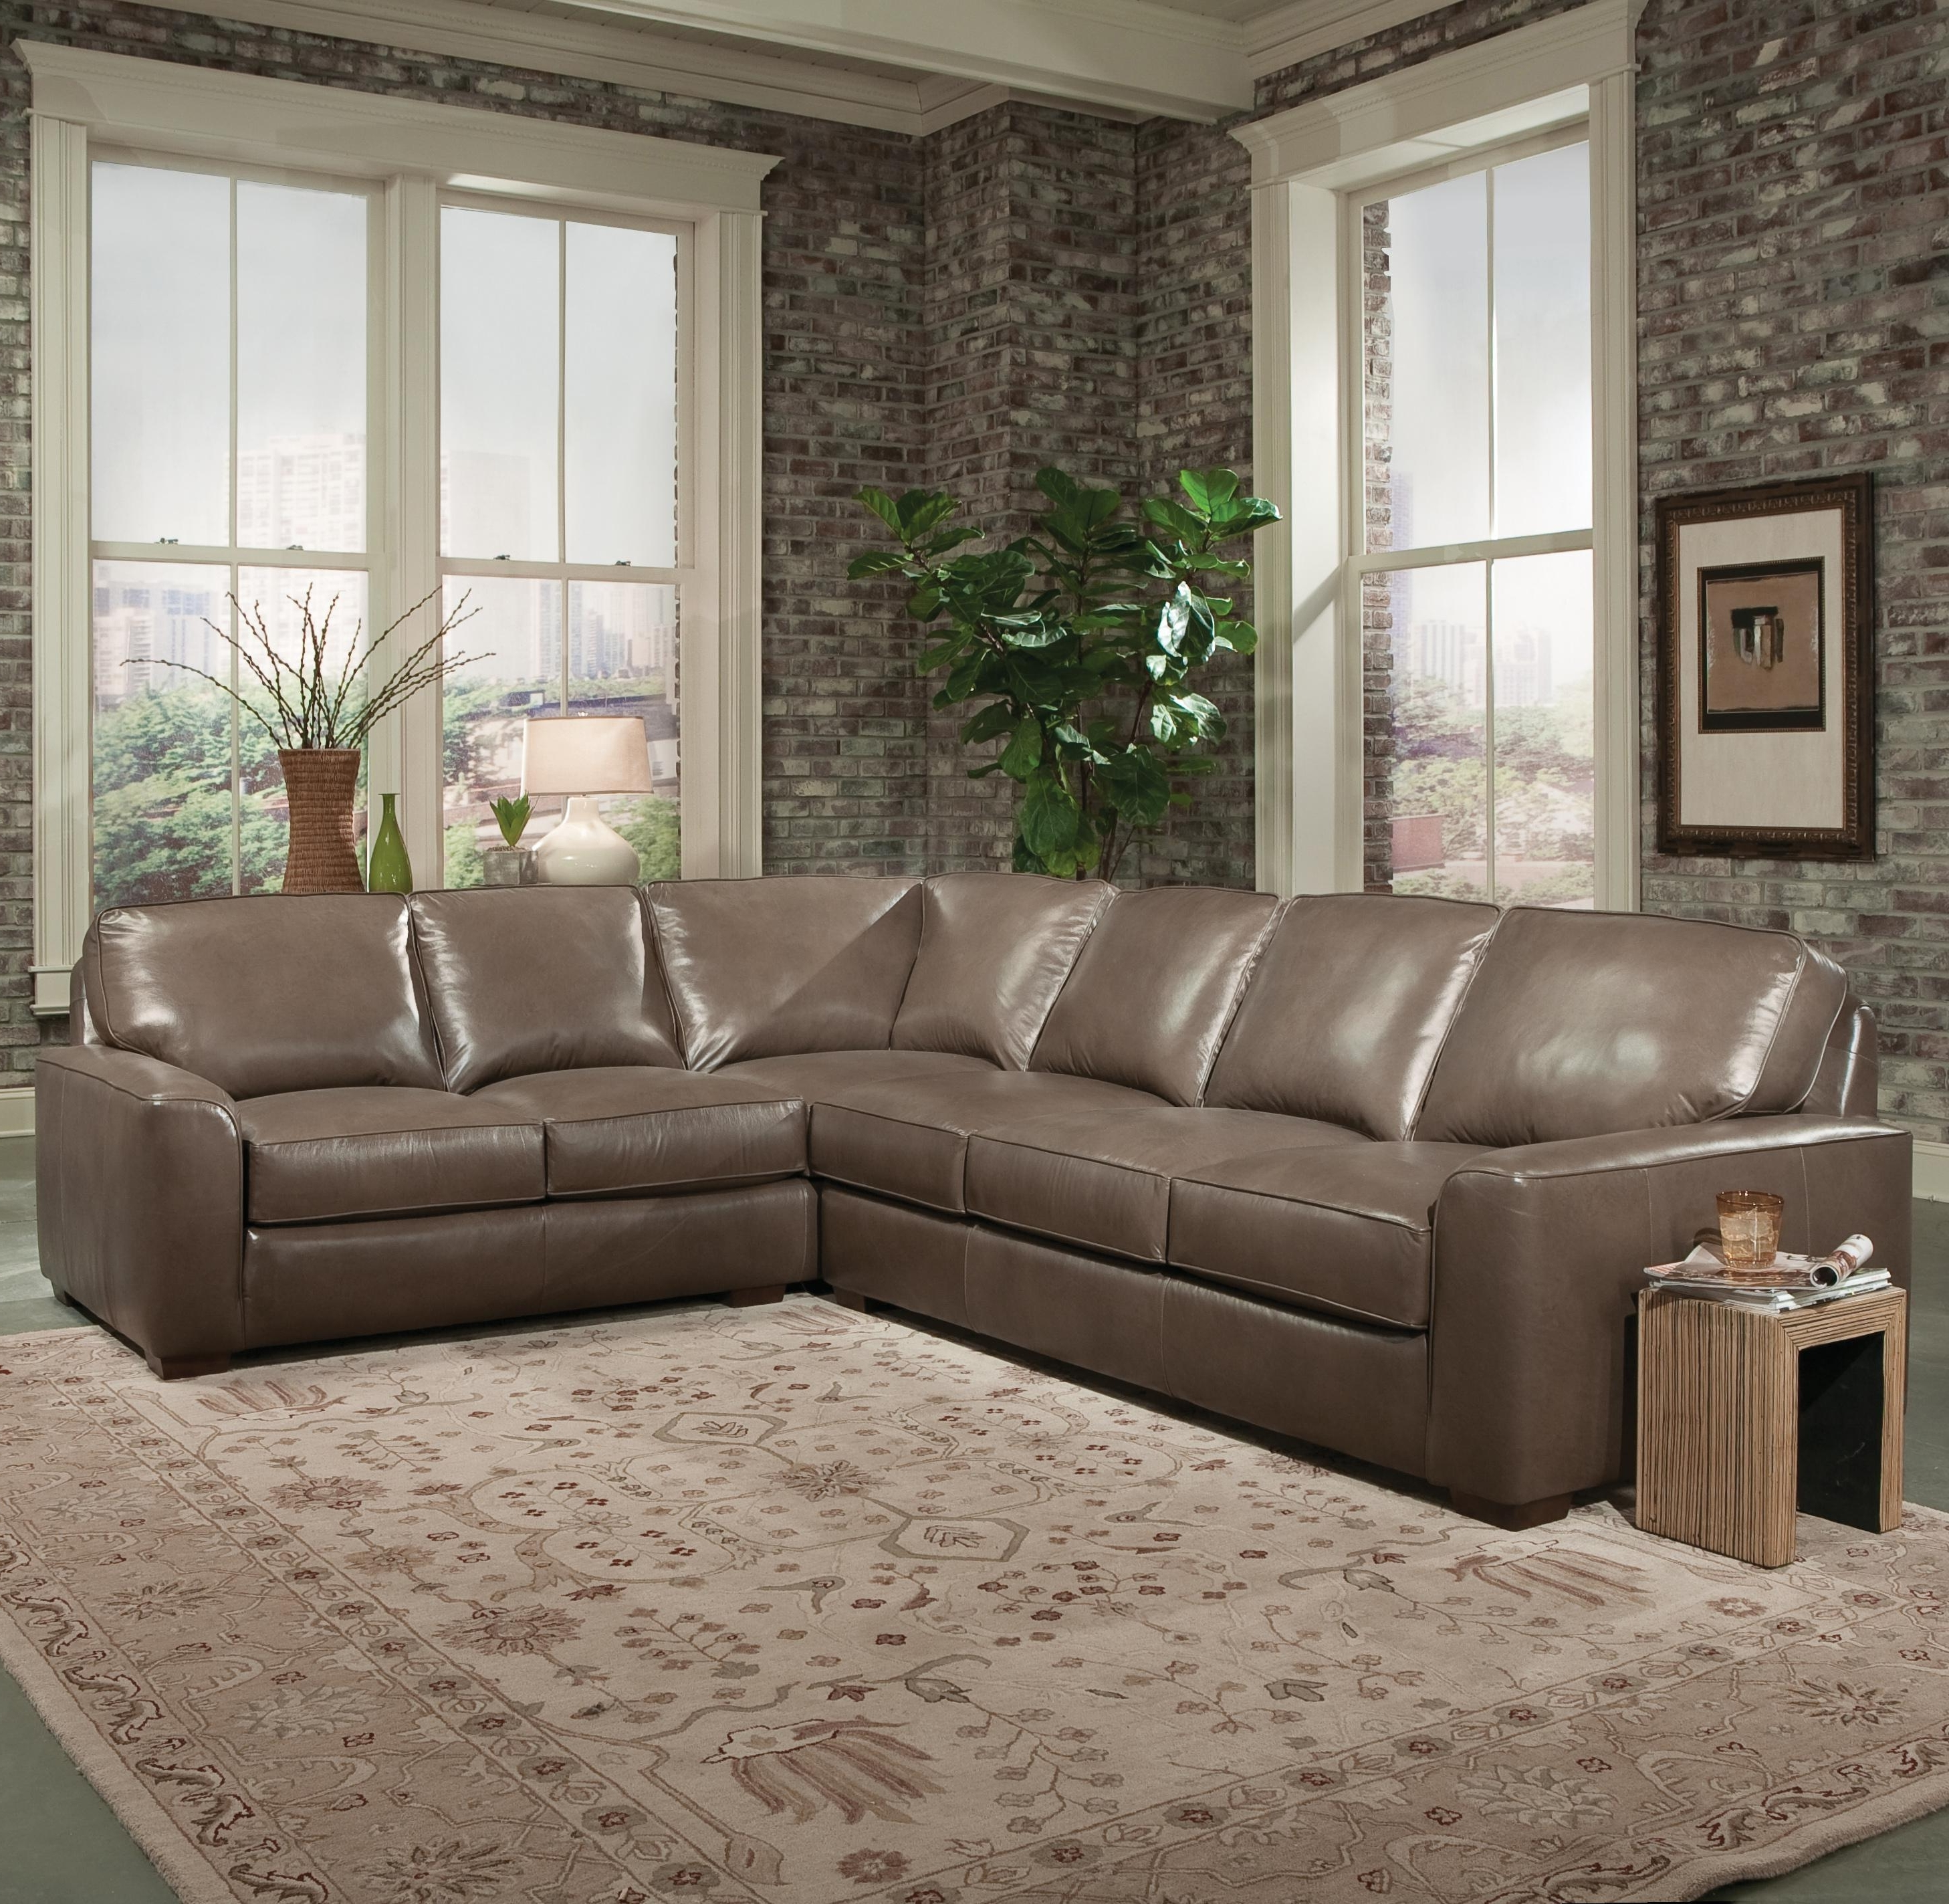 Explore Gallery of Ivan Smith Sectional Sofas (Showing 13 of 13